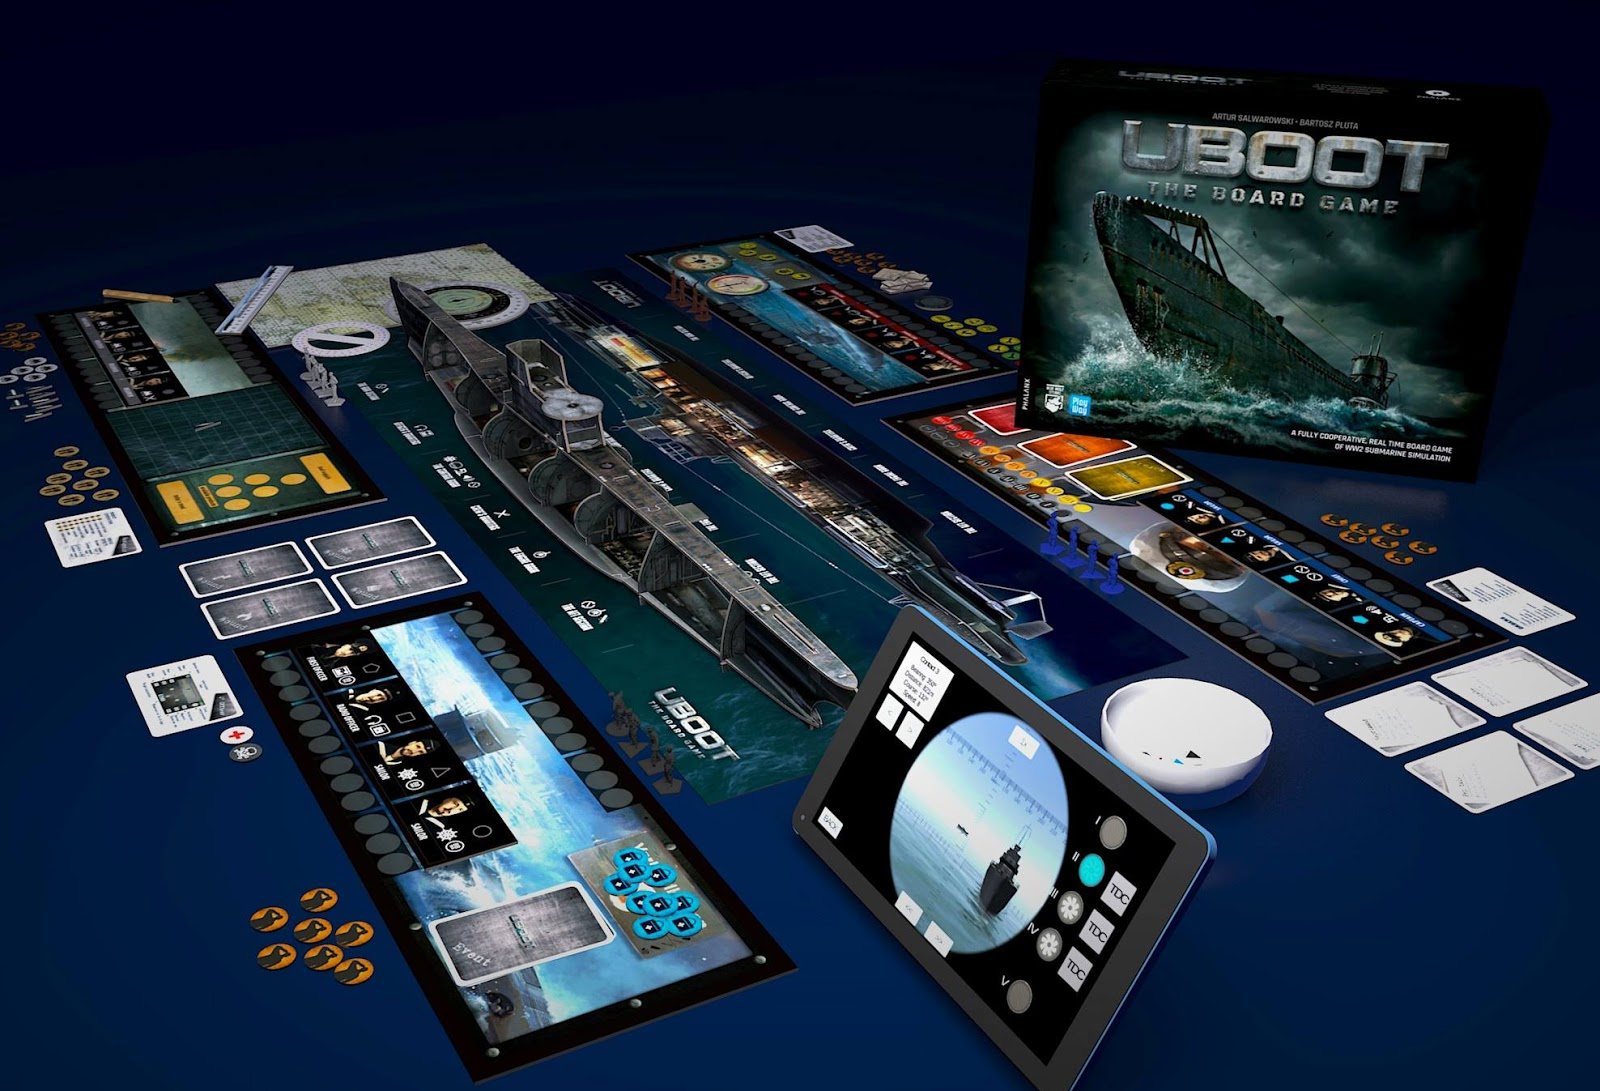 UBOOT the board game Phalanx games